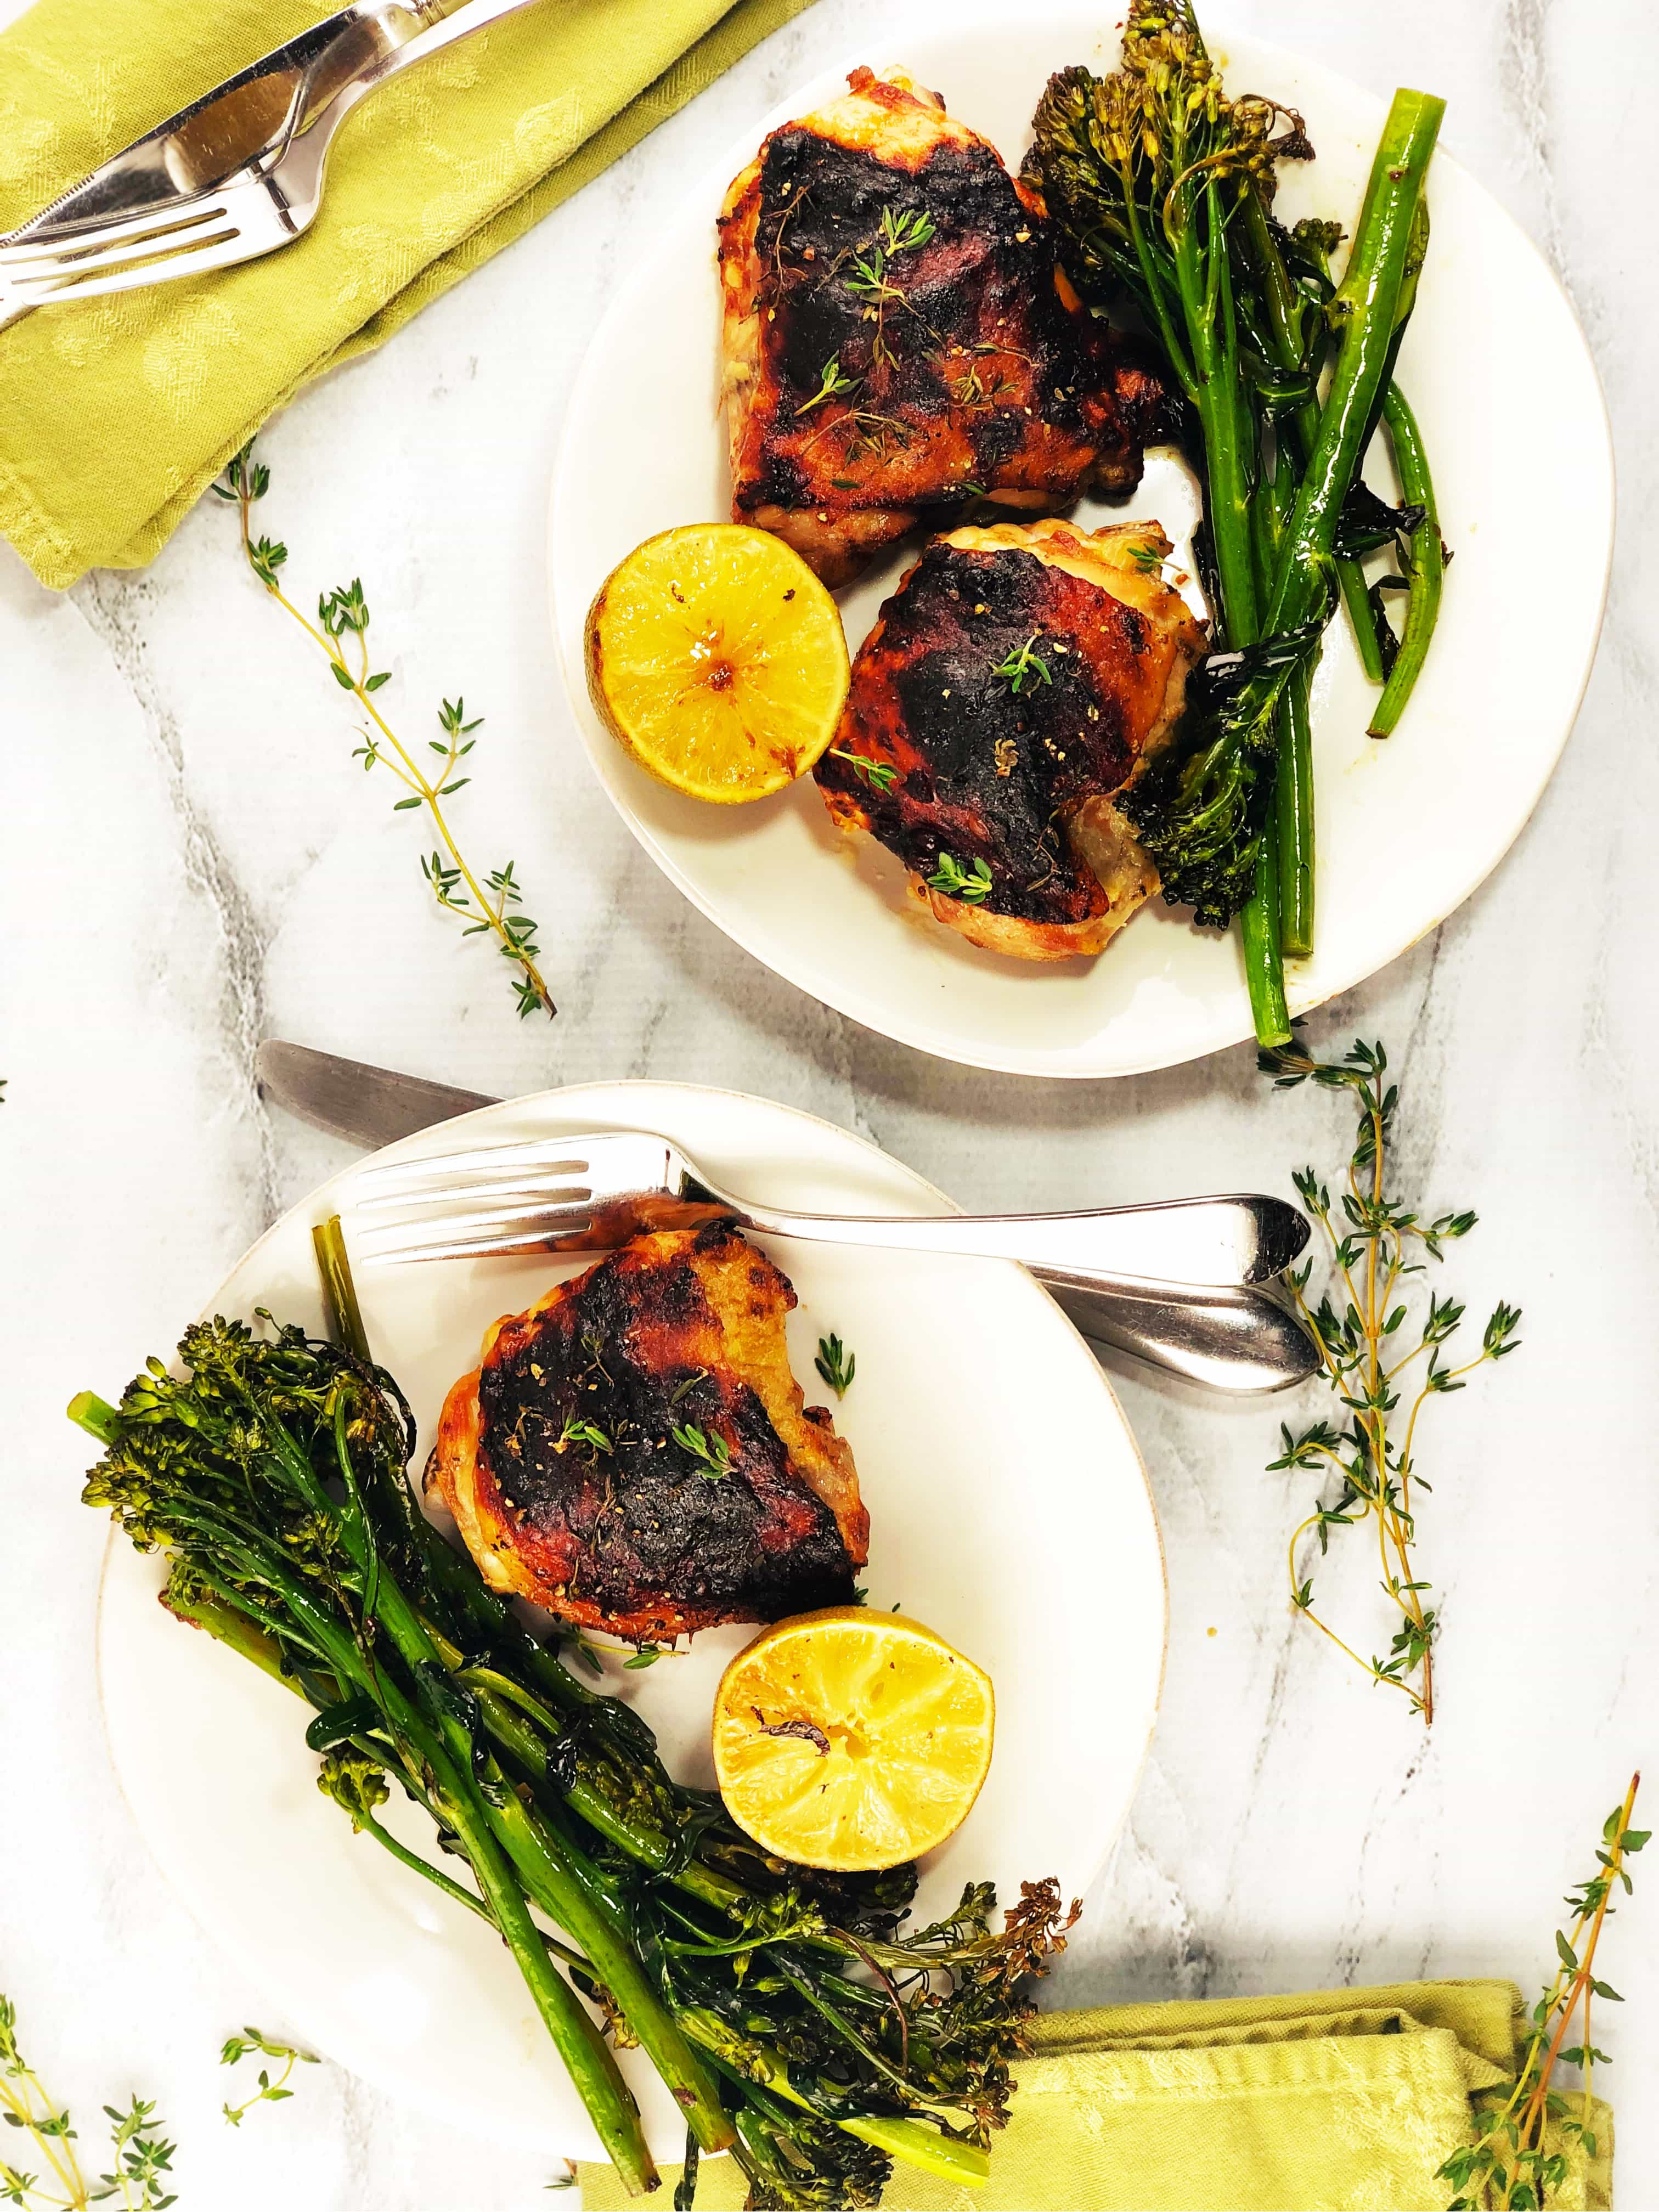 Rhubarb Chicken with Broccolini and Rhubarb Butter